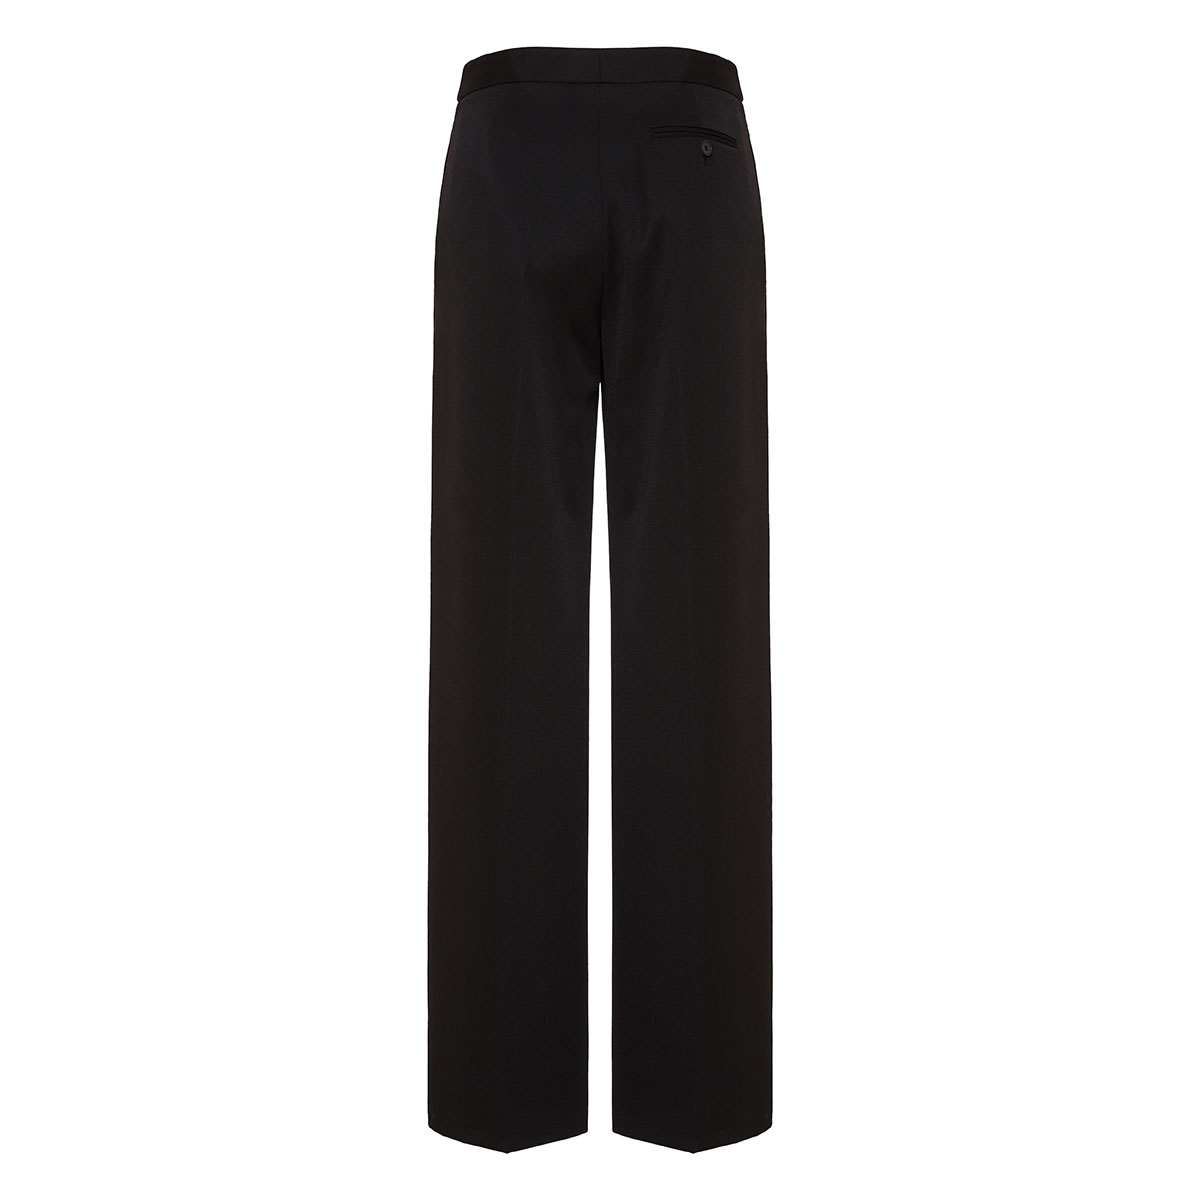 Wide-leg tailored trousers